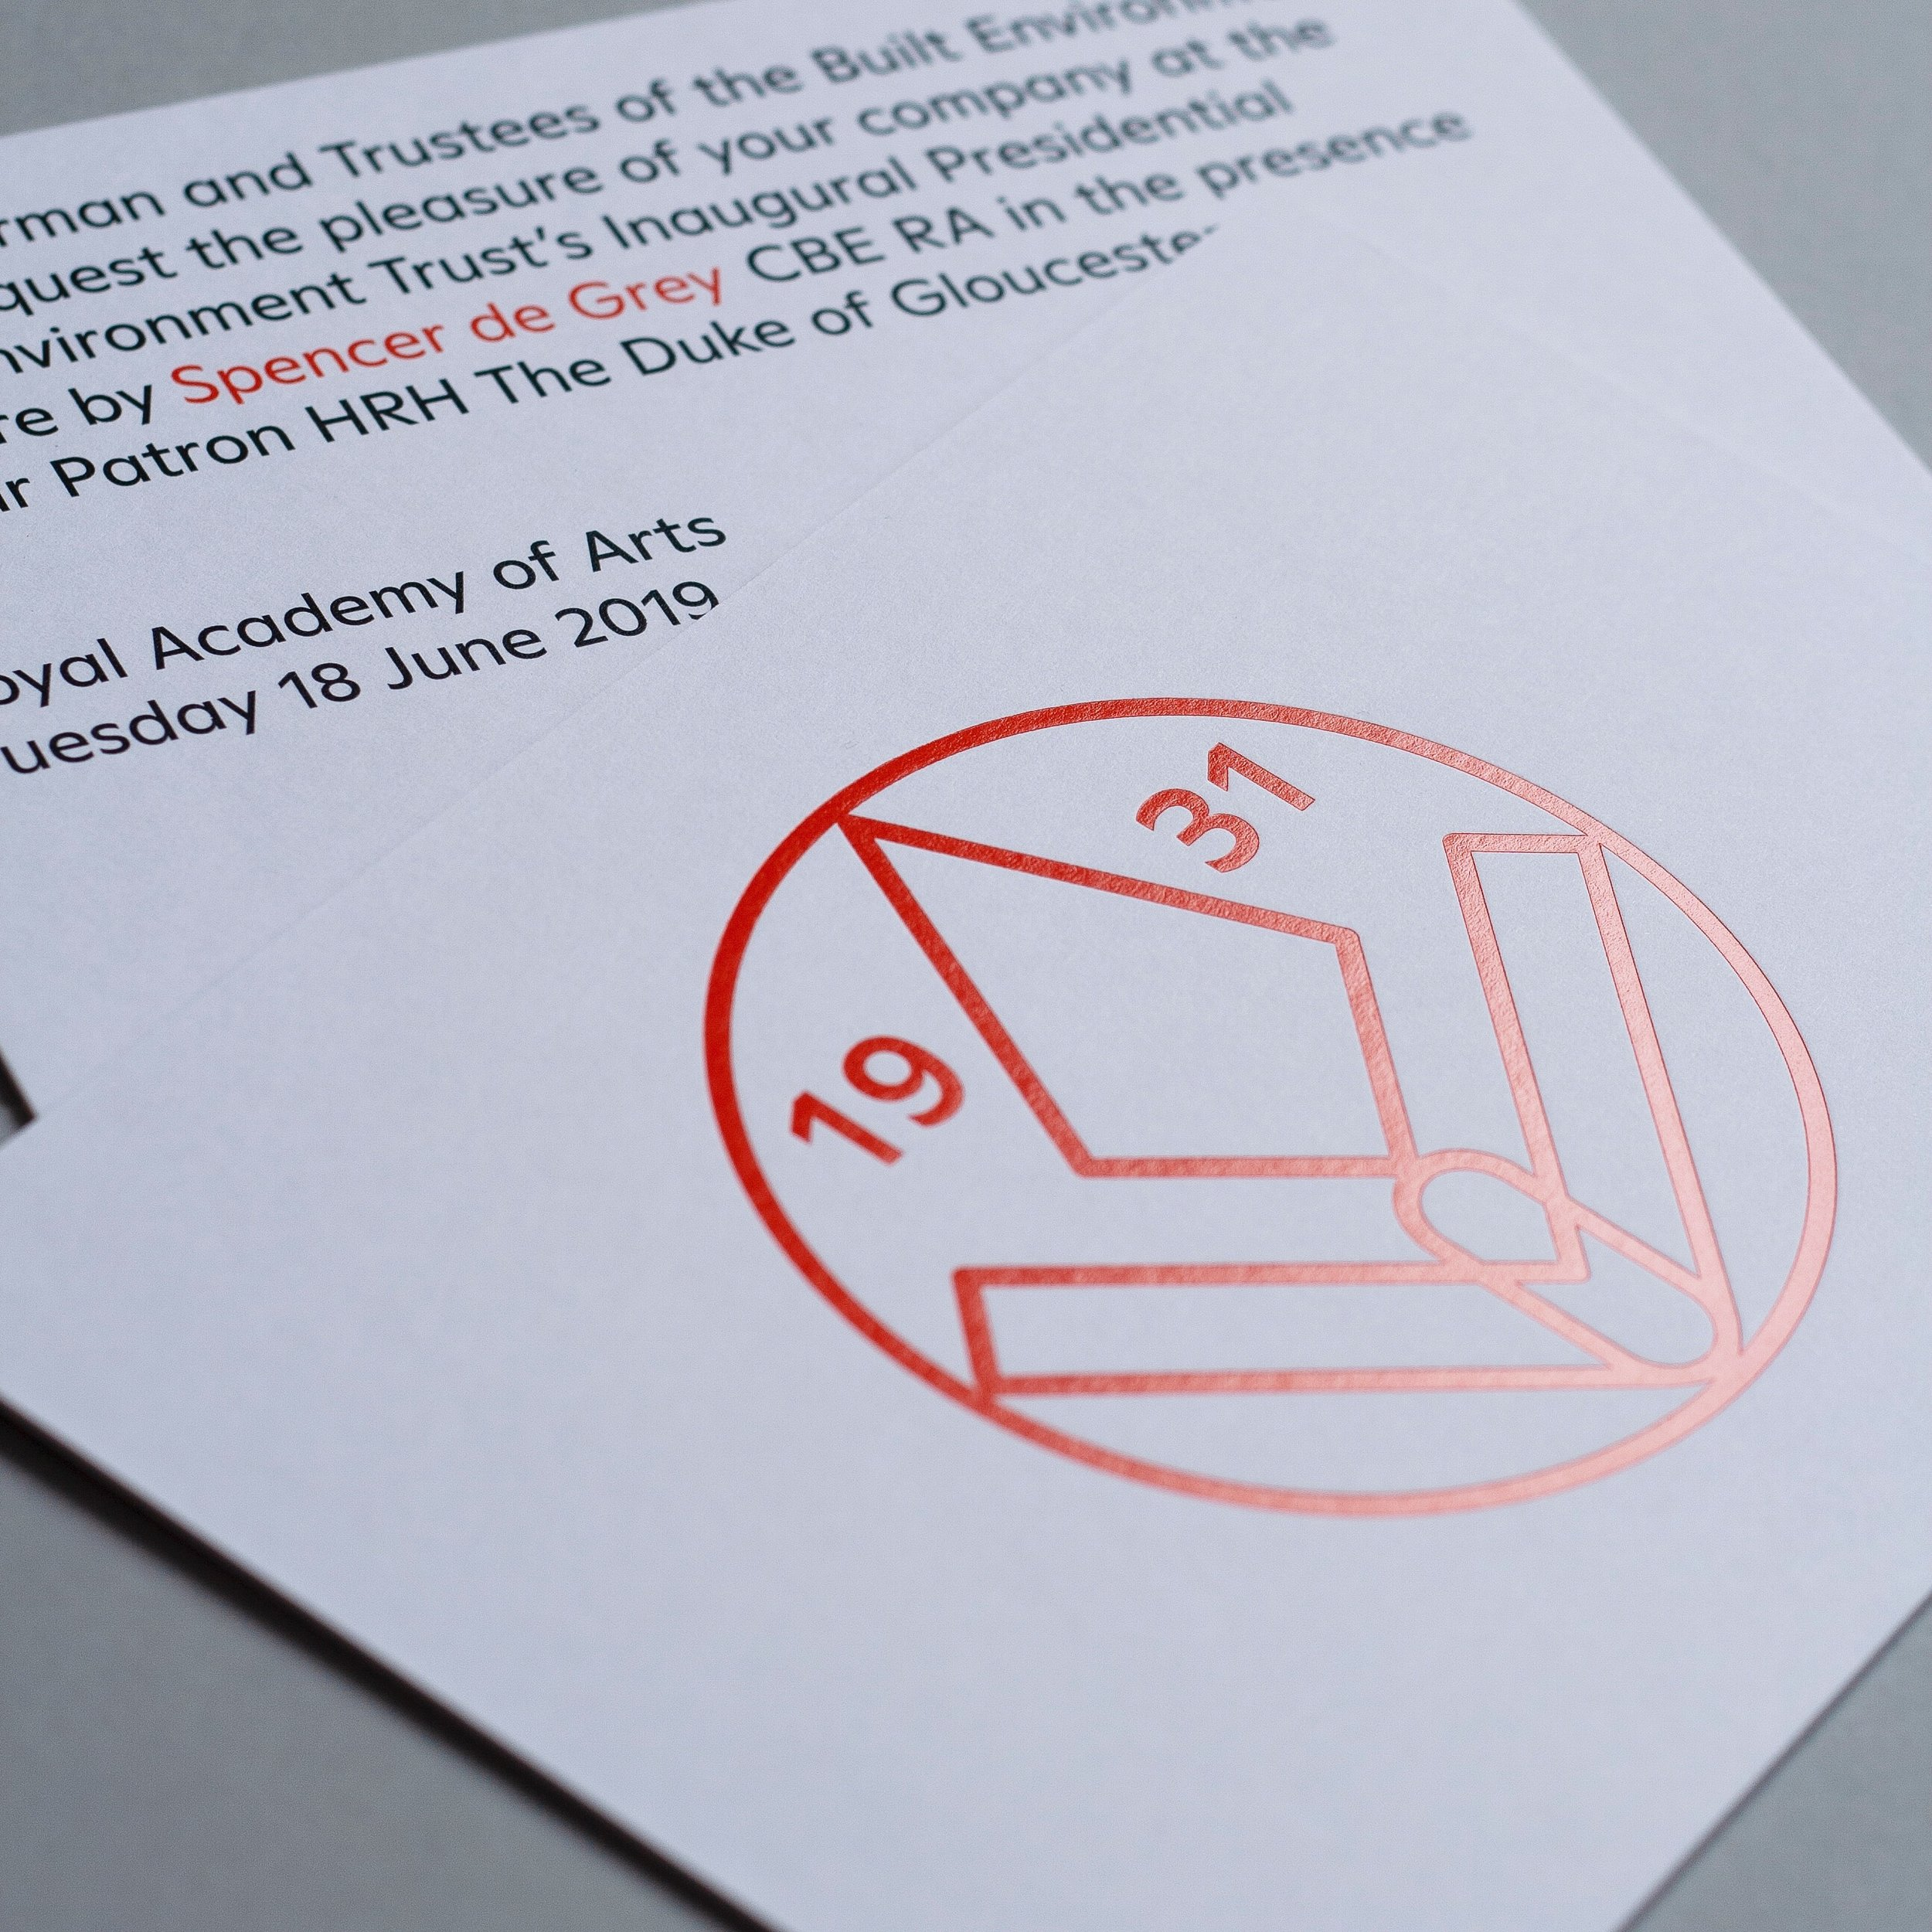 hight resolution of invitations printed for the built environment trust on lace white 1050gsm senses paper foil stamping